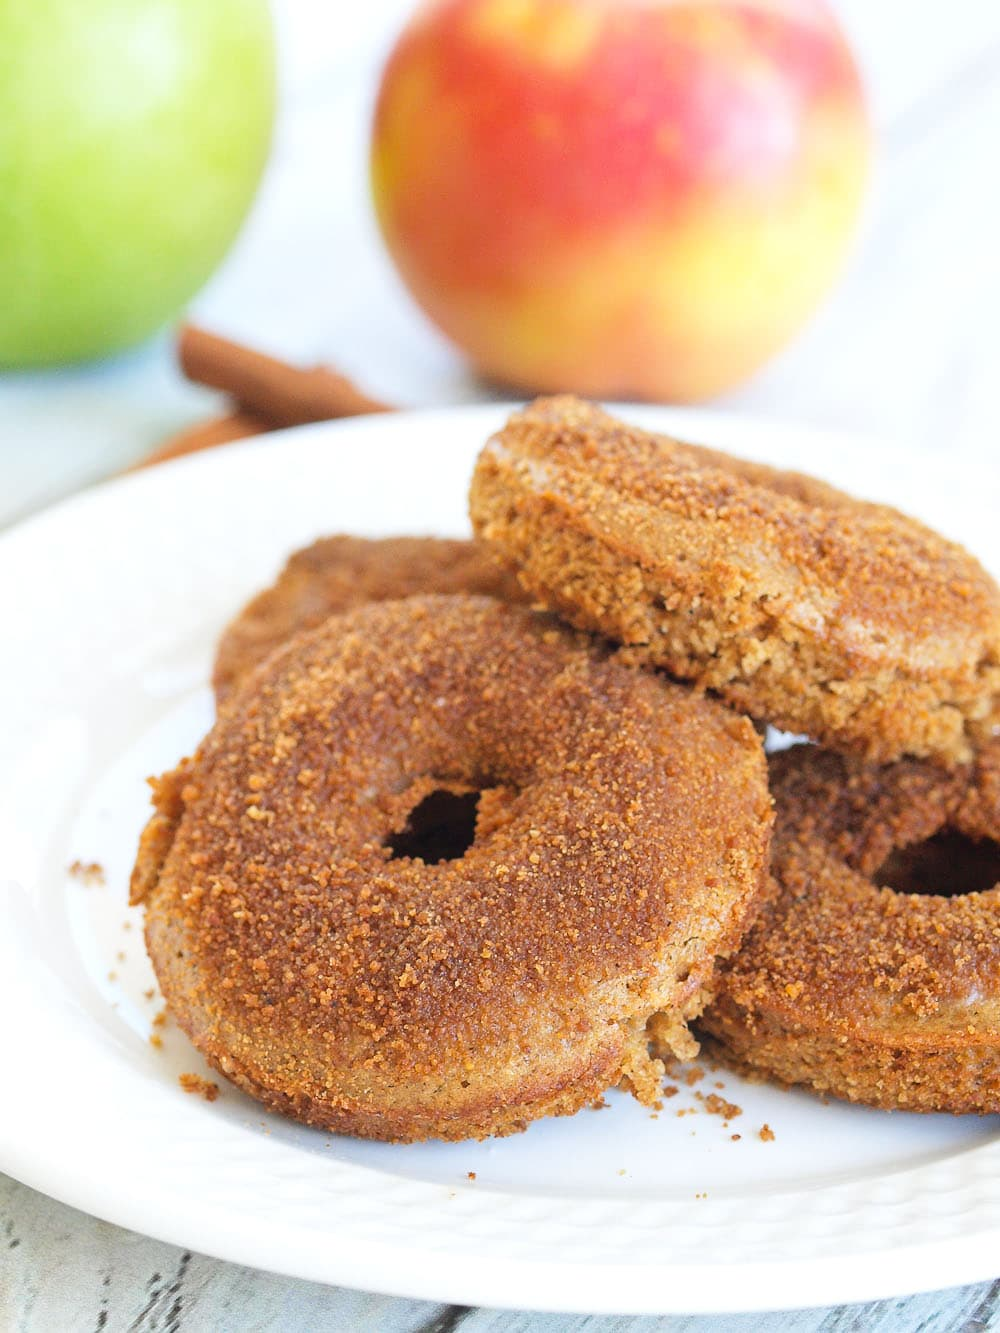 These Baked Apple Cider Donuts are perfect for fall baking! This is a healthy, whole grain recipe that my kids gobbled up in no time. It's easy to make your own healthy donuts at home!